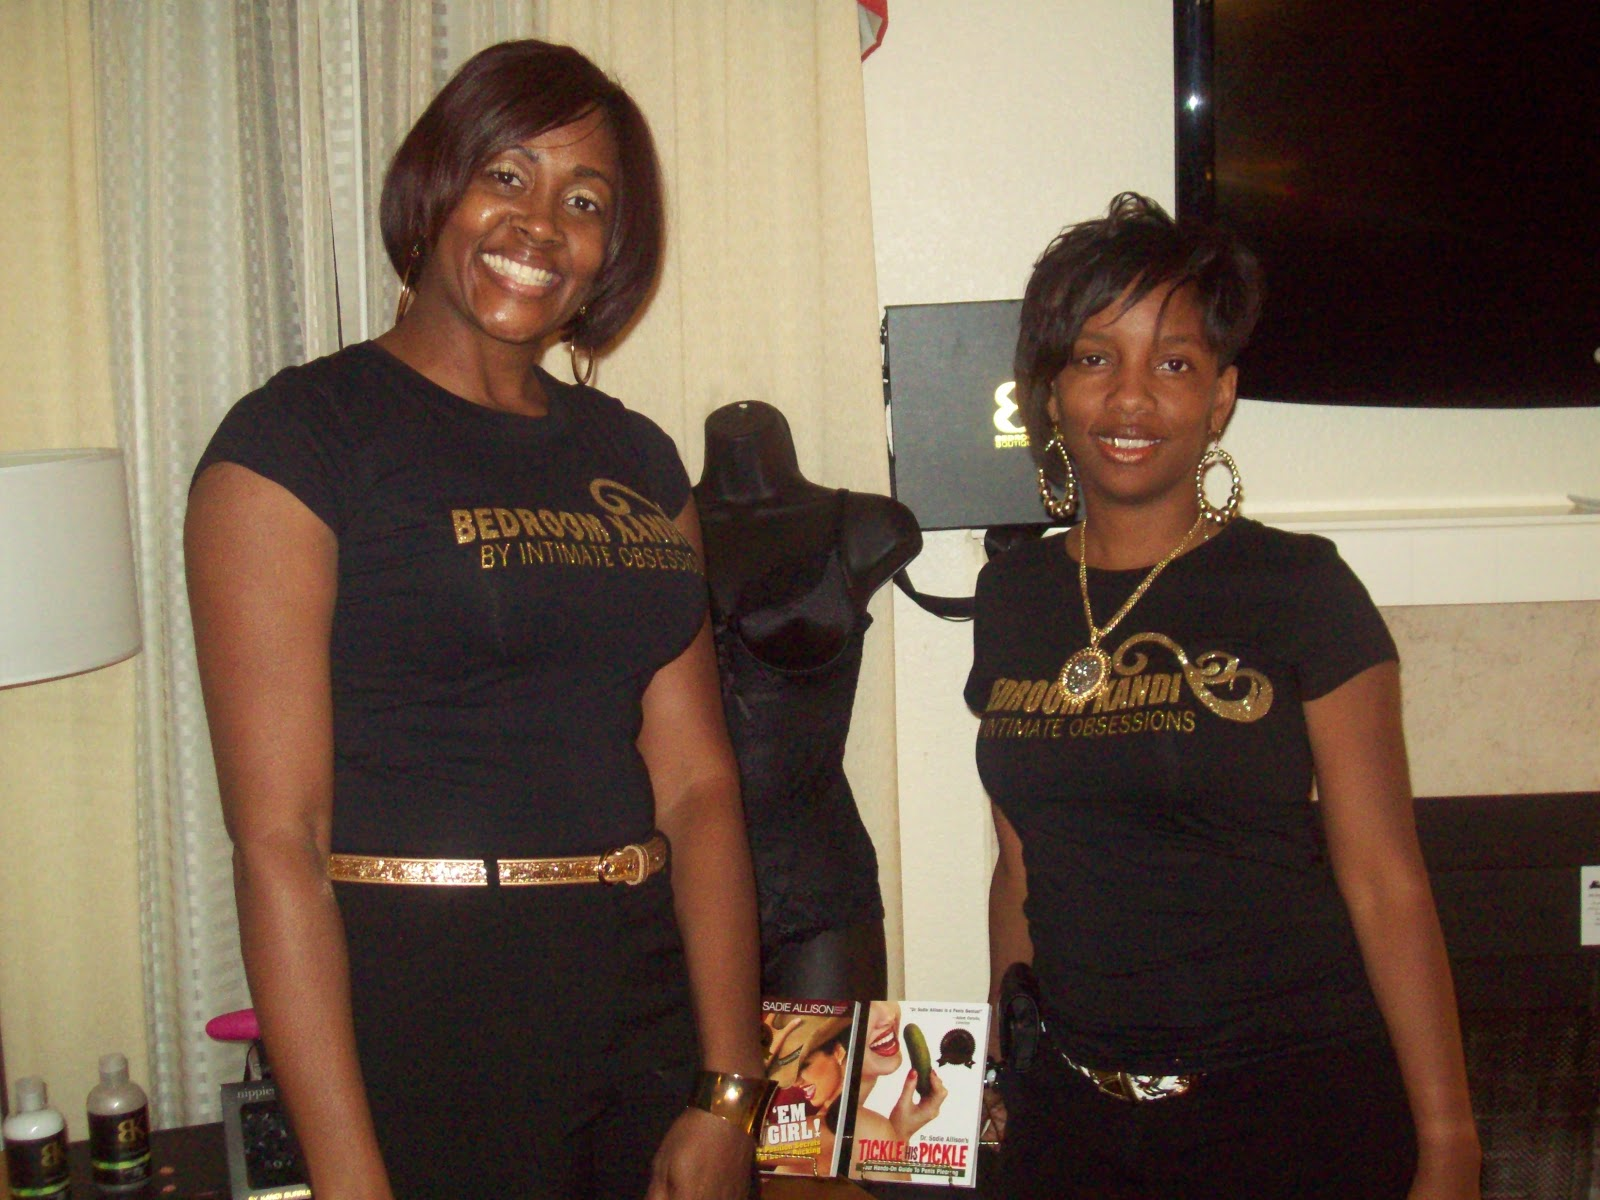 beyond greatness event planning atl ladies black out slumber party bedroom kandi boutique consultant